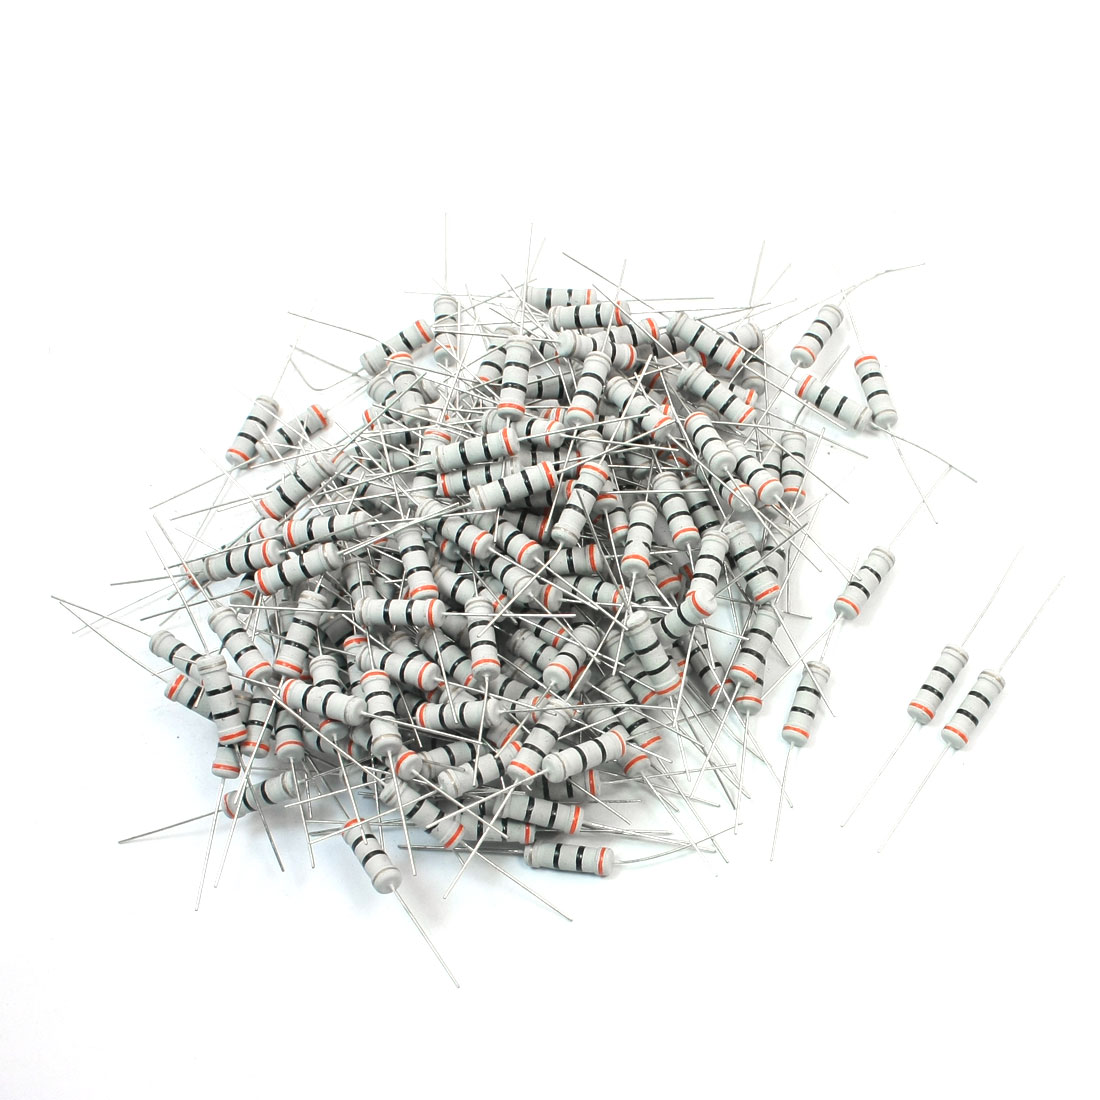 200Pcs 2 Watt 30 Ohm 5% Tolerance Colored Ring Resistance Metal Oxide Film Resistor Axial Lead